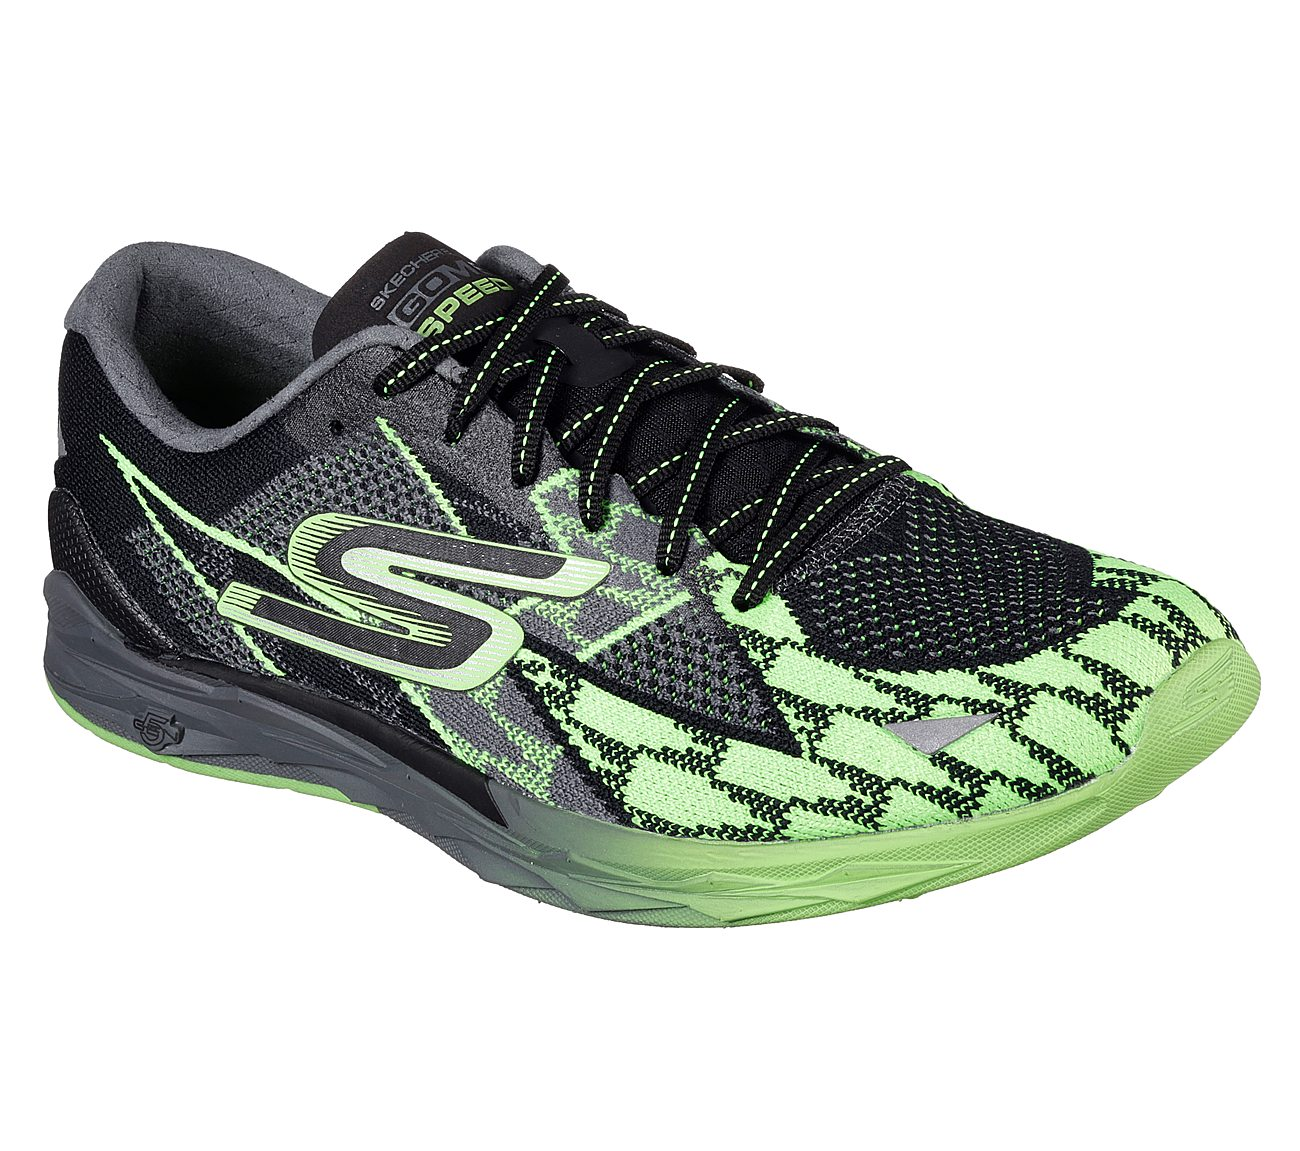 Buy SKECHERS Skechers GOmeb Speed 4 Skechers Performance Shoes Smkr7